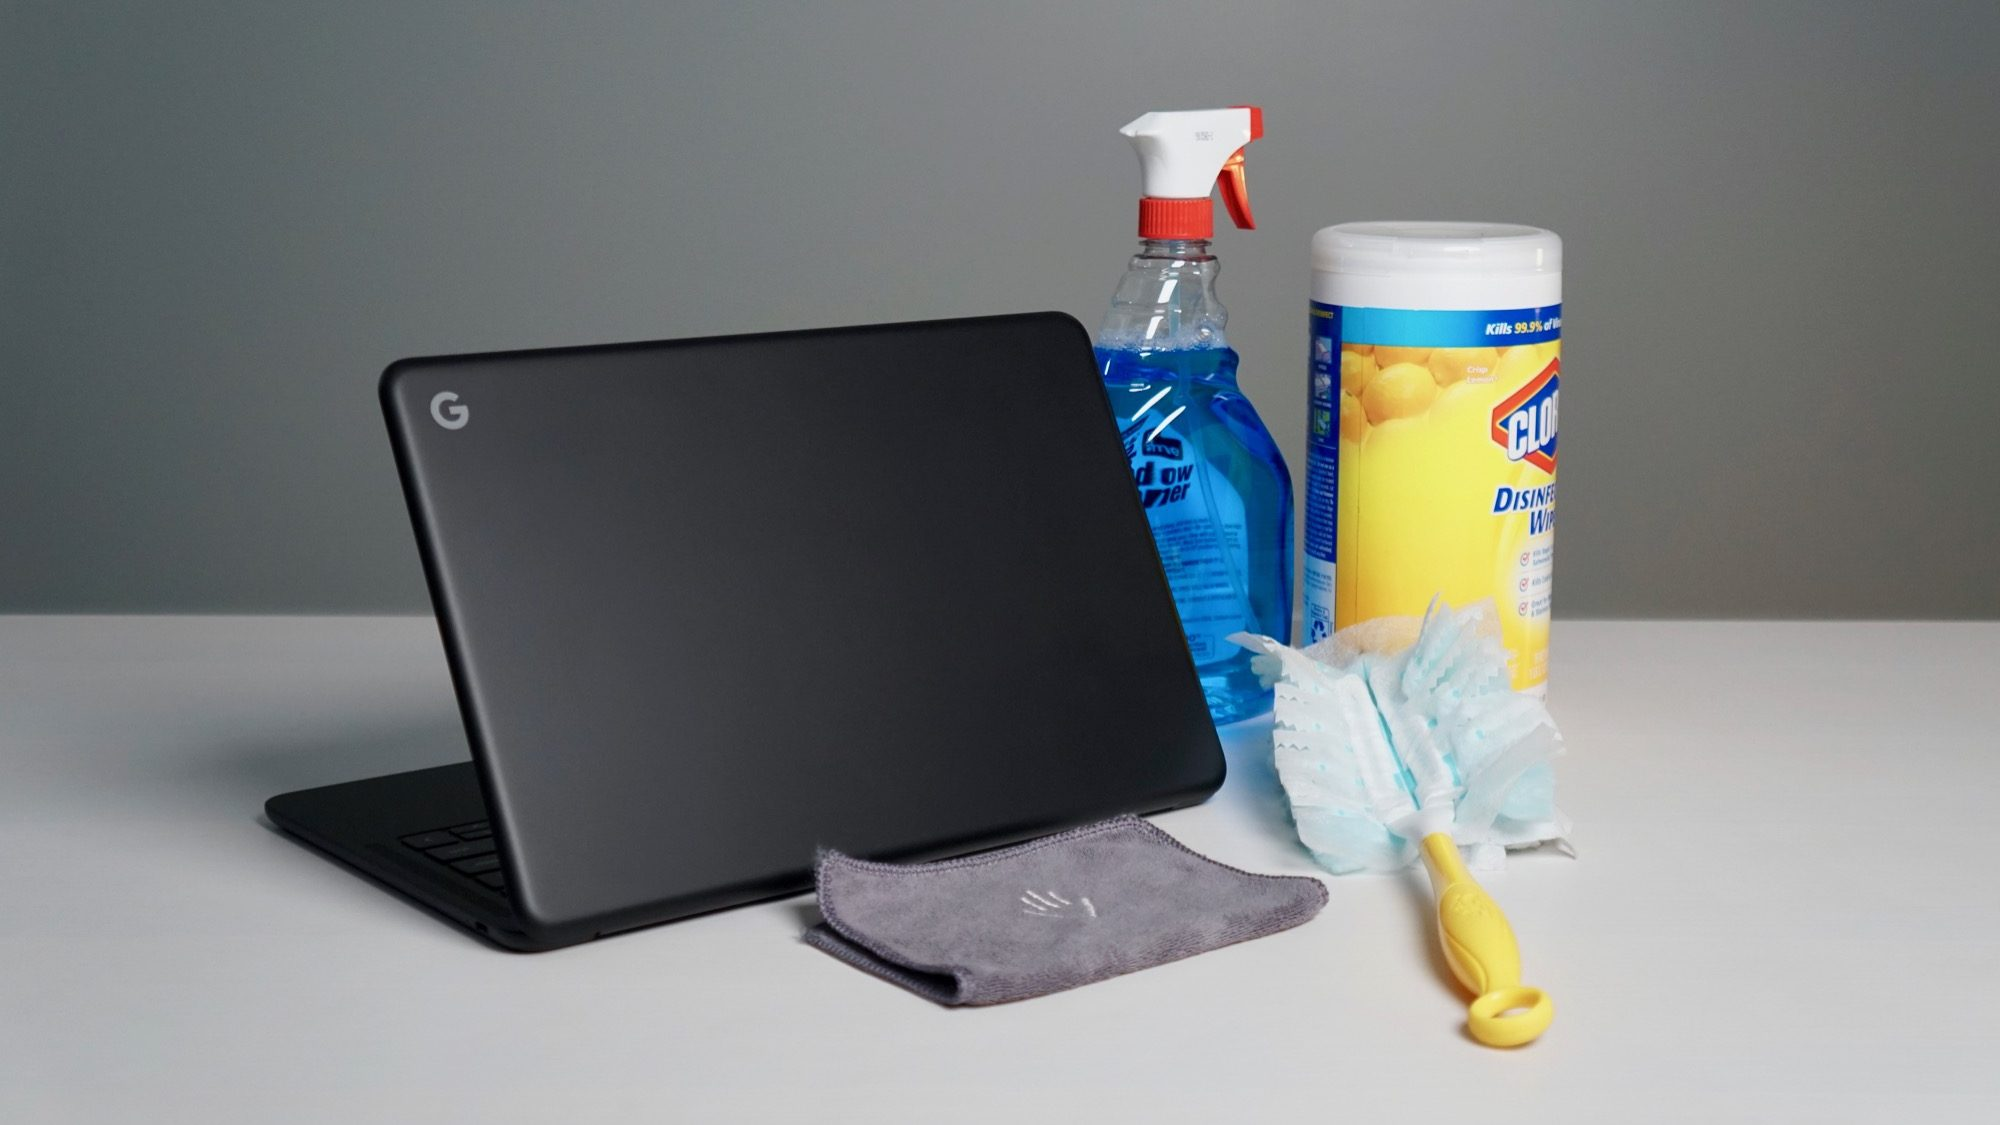 5 steps to clean and disinfect your Chromebook to prevent coronavirus spread